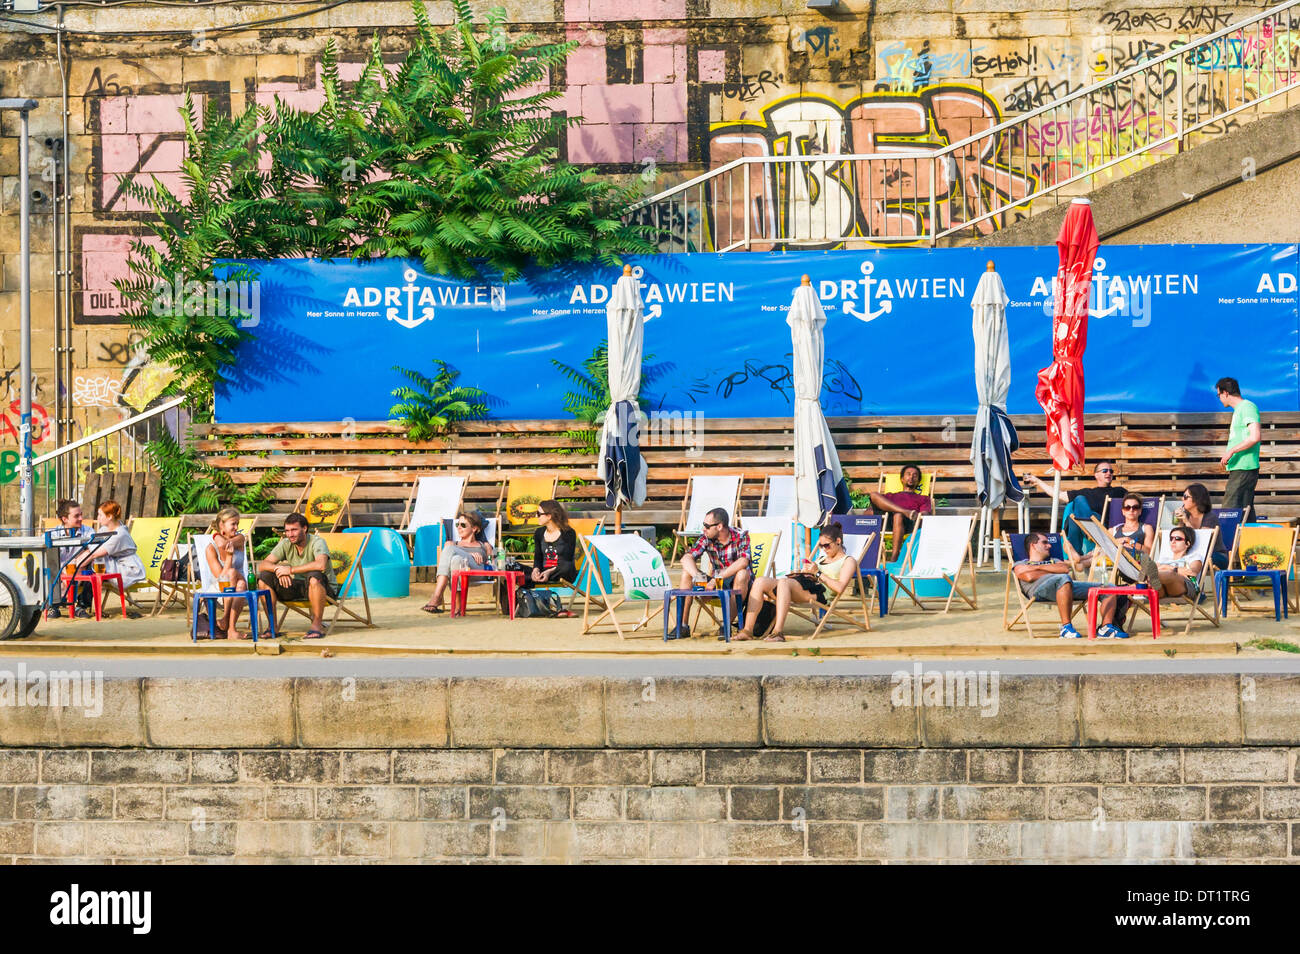 young people relaxing after work at the _adriawien_ beach cafe on the shores of the danube canal, vienna, austria - Stock Image